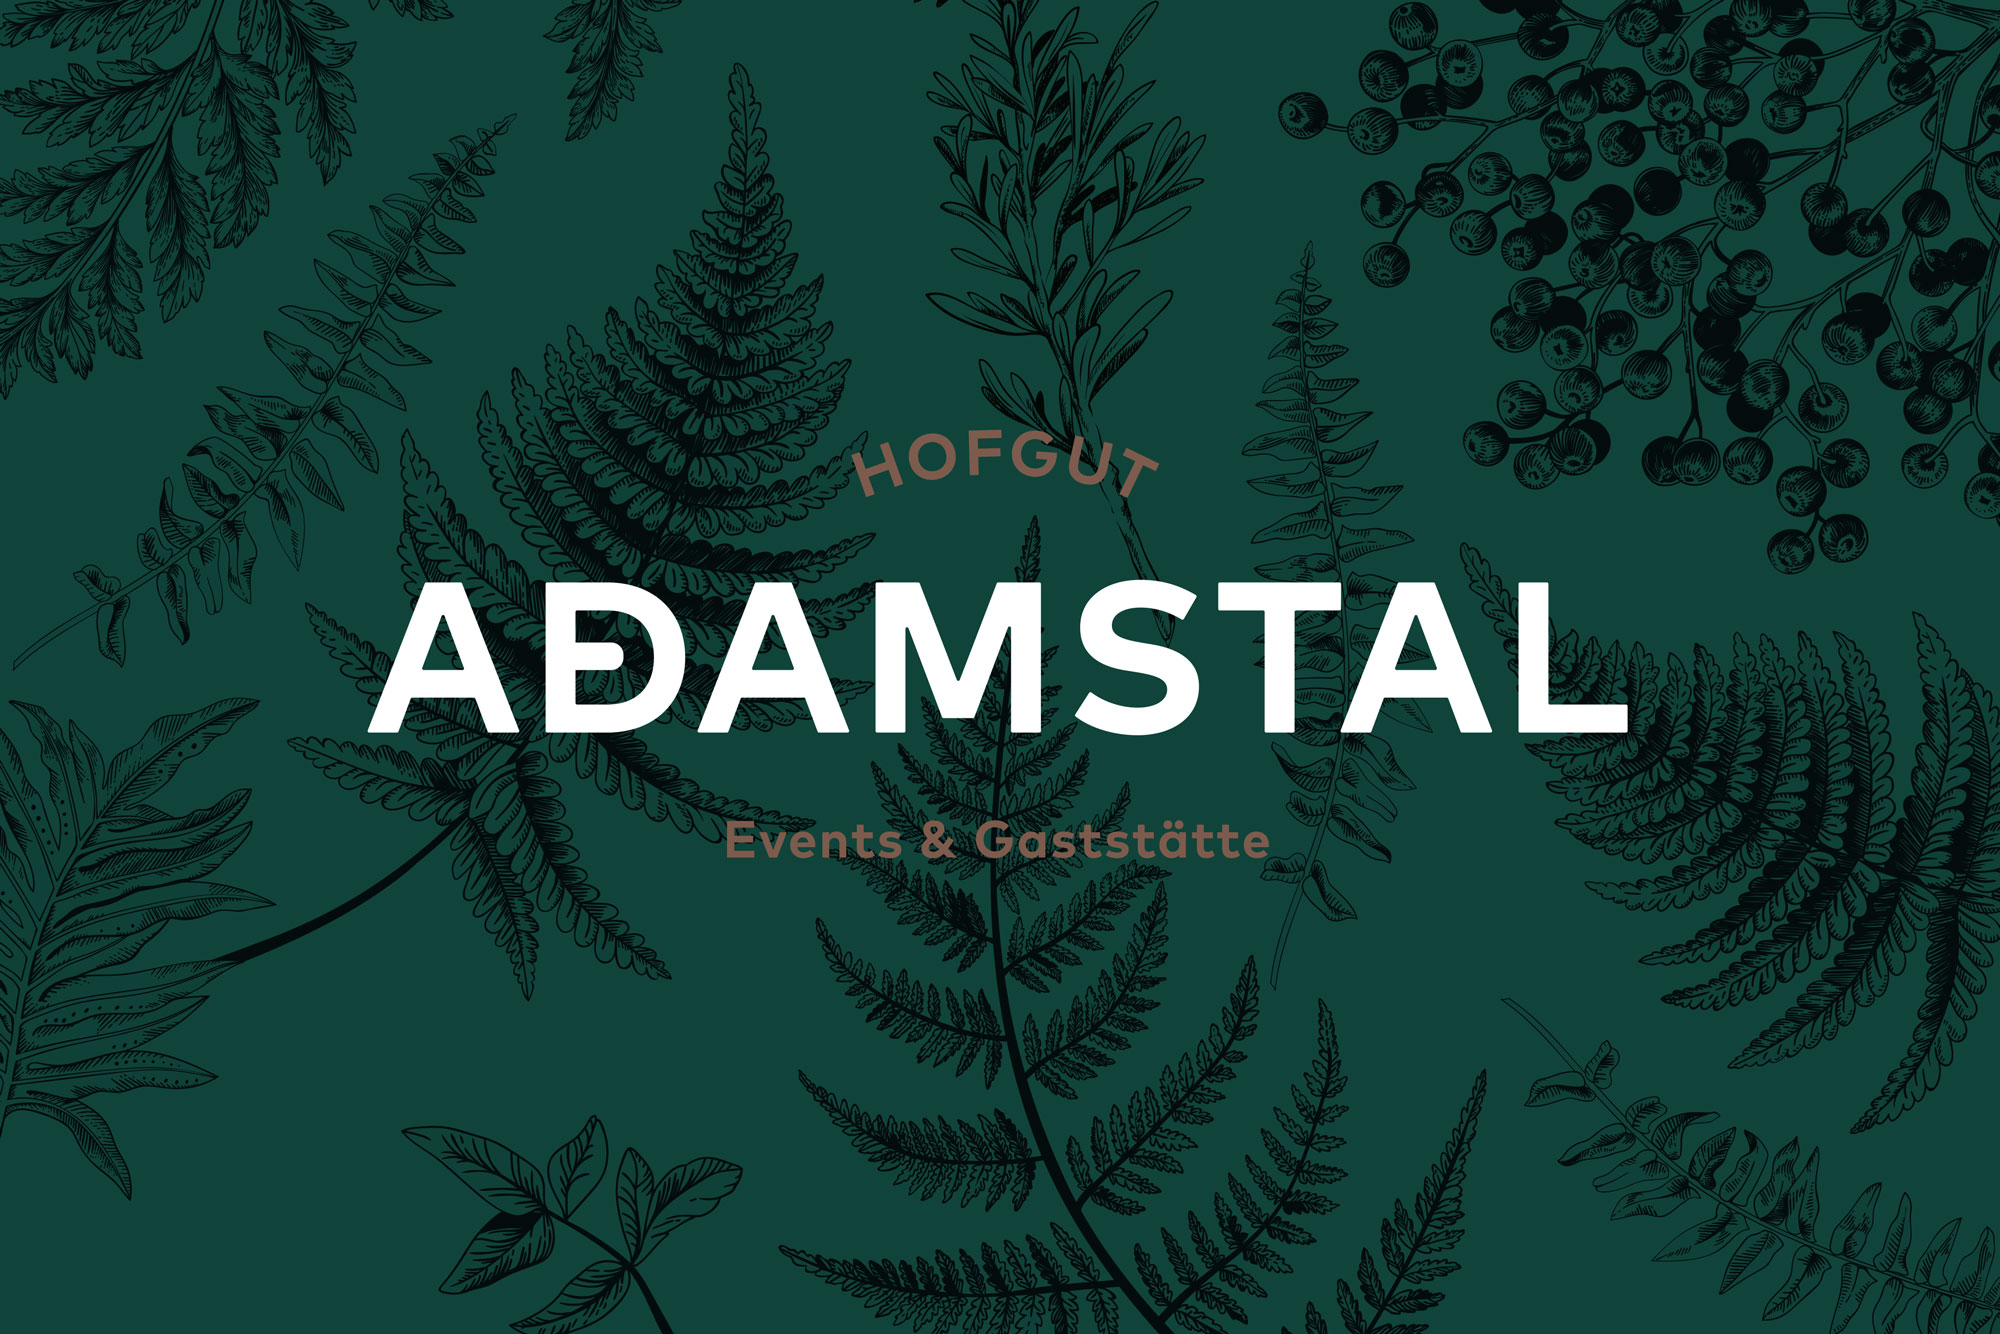 Hofgut-Adamstal-Corporate-Design-Wiesbaden